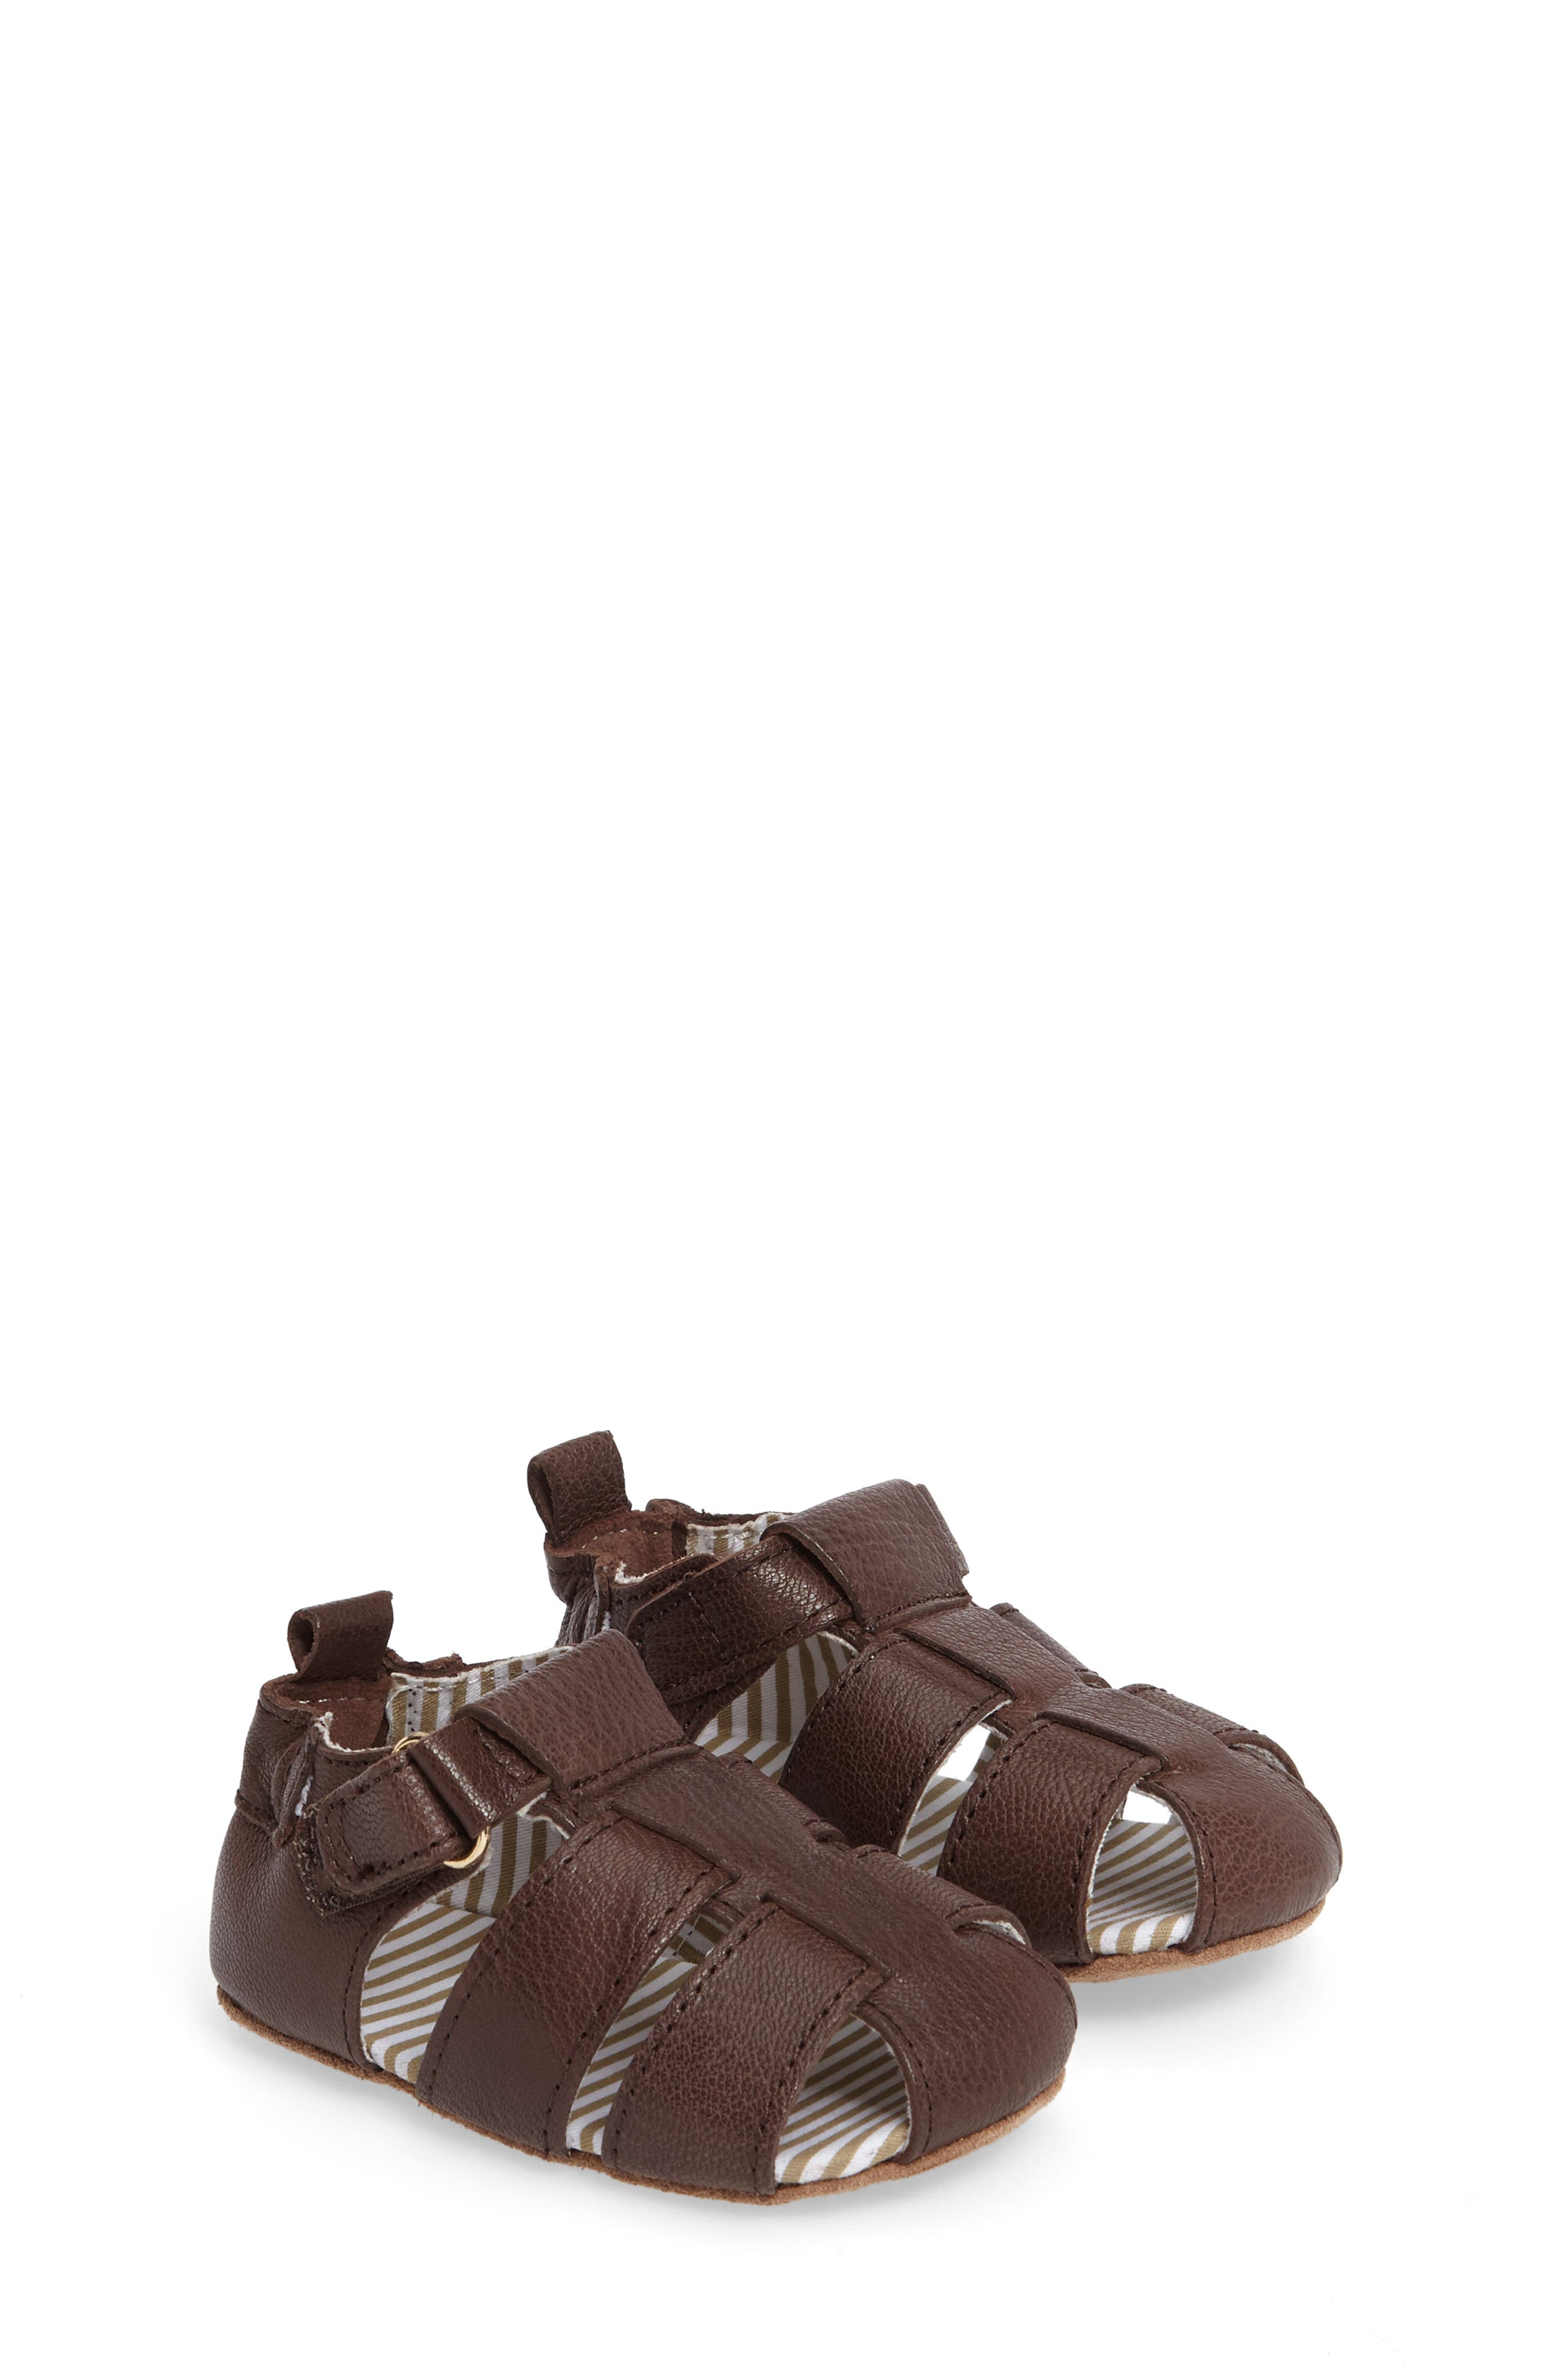 Alternate Image 1 Selected - Robeez® Samuel Fisherman Sandal (Baby & Walker)